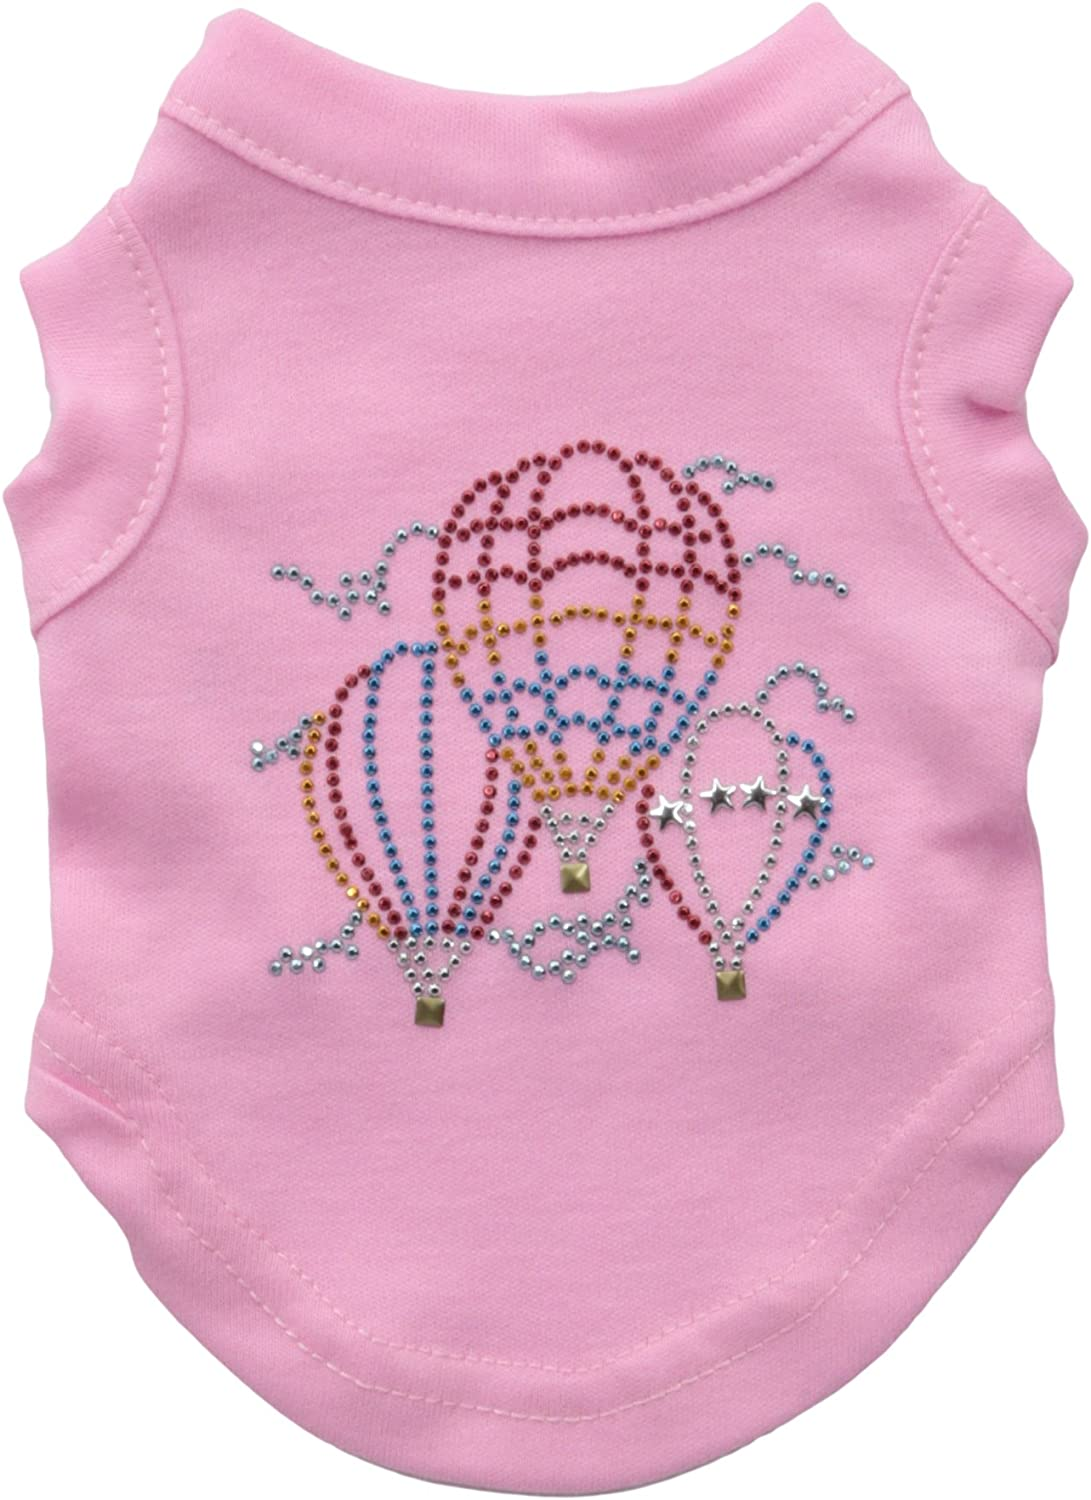 Mirage Pet Products Hot Air Balloon Rhinestone Pet Shirt, XSmall, Light Pink